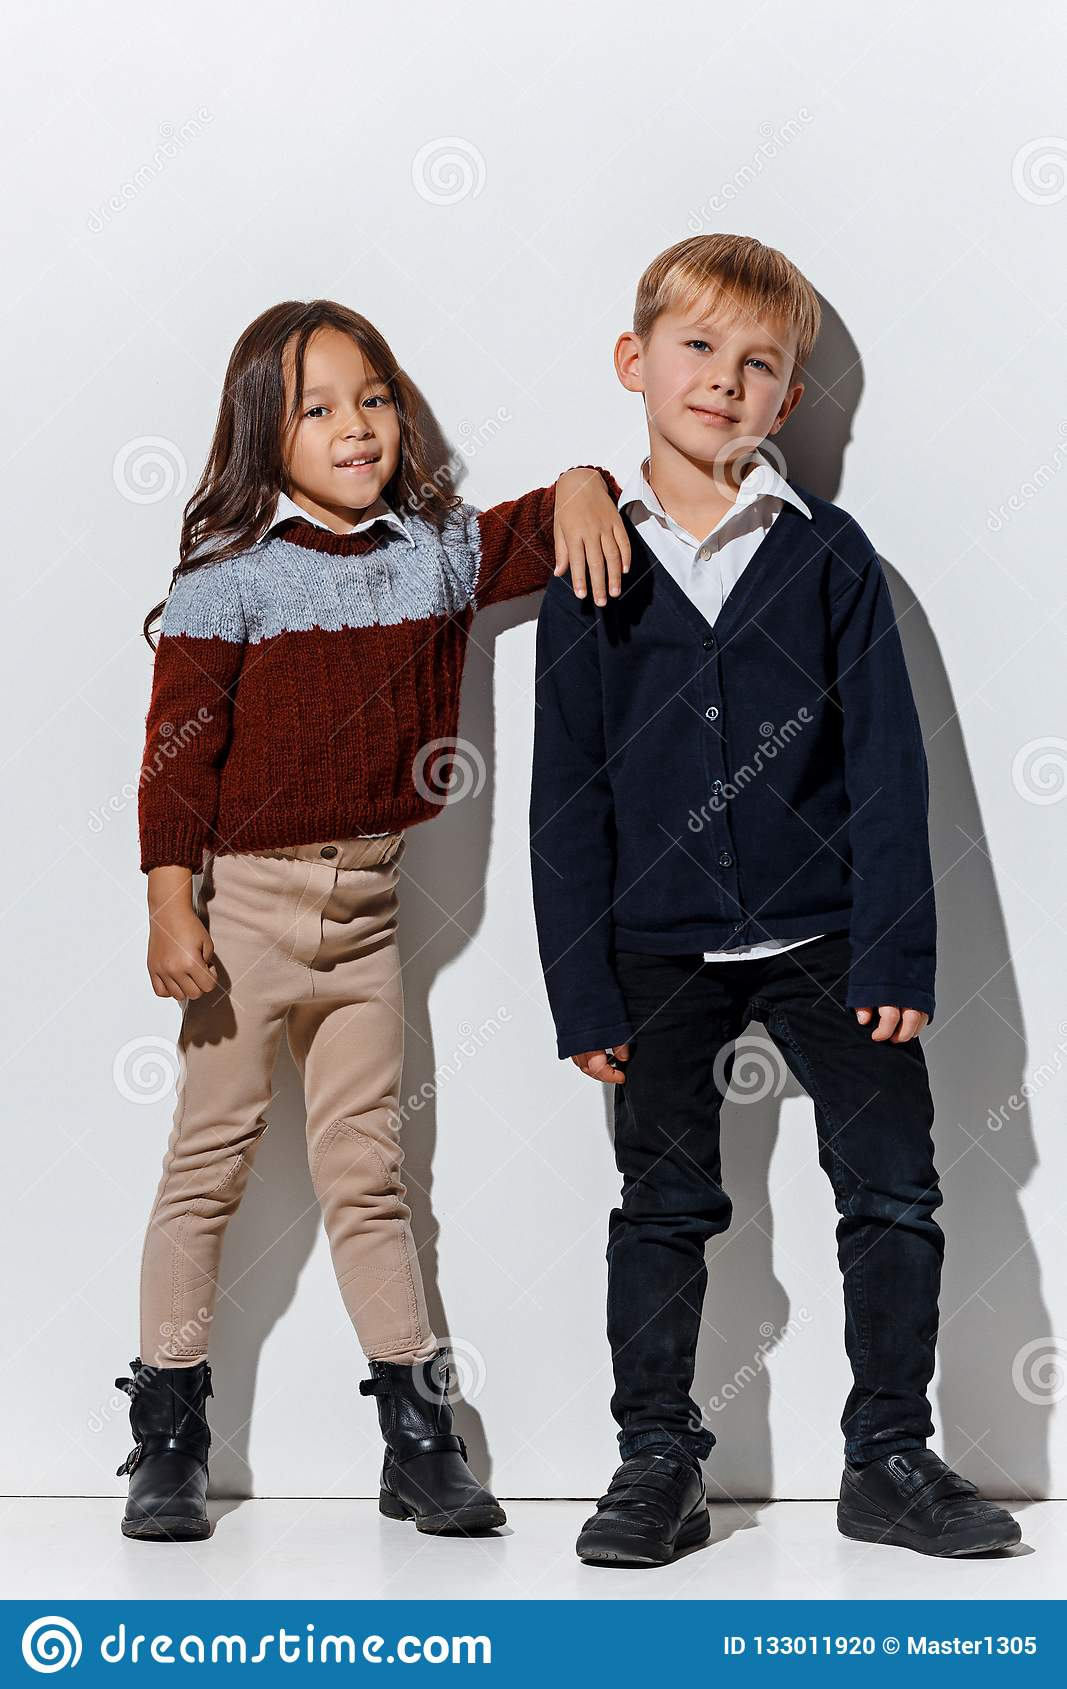 d8440a619 The portrait of cute little kids boy and girl in stylish jeans clothes  looking at camera against white studio wall. Kids fashion and happy  emotions concept